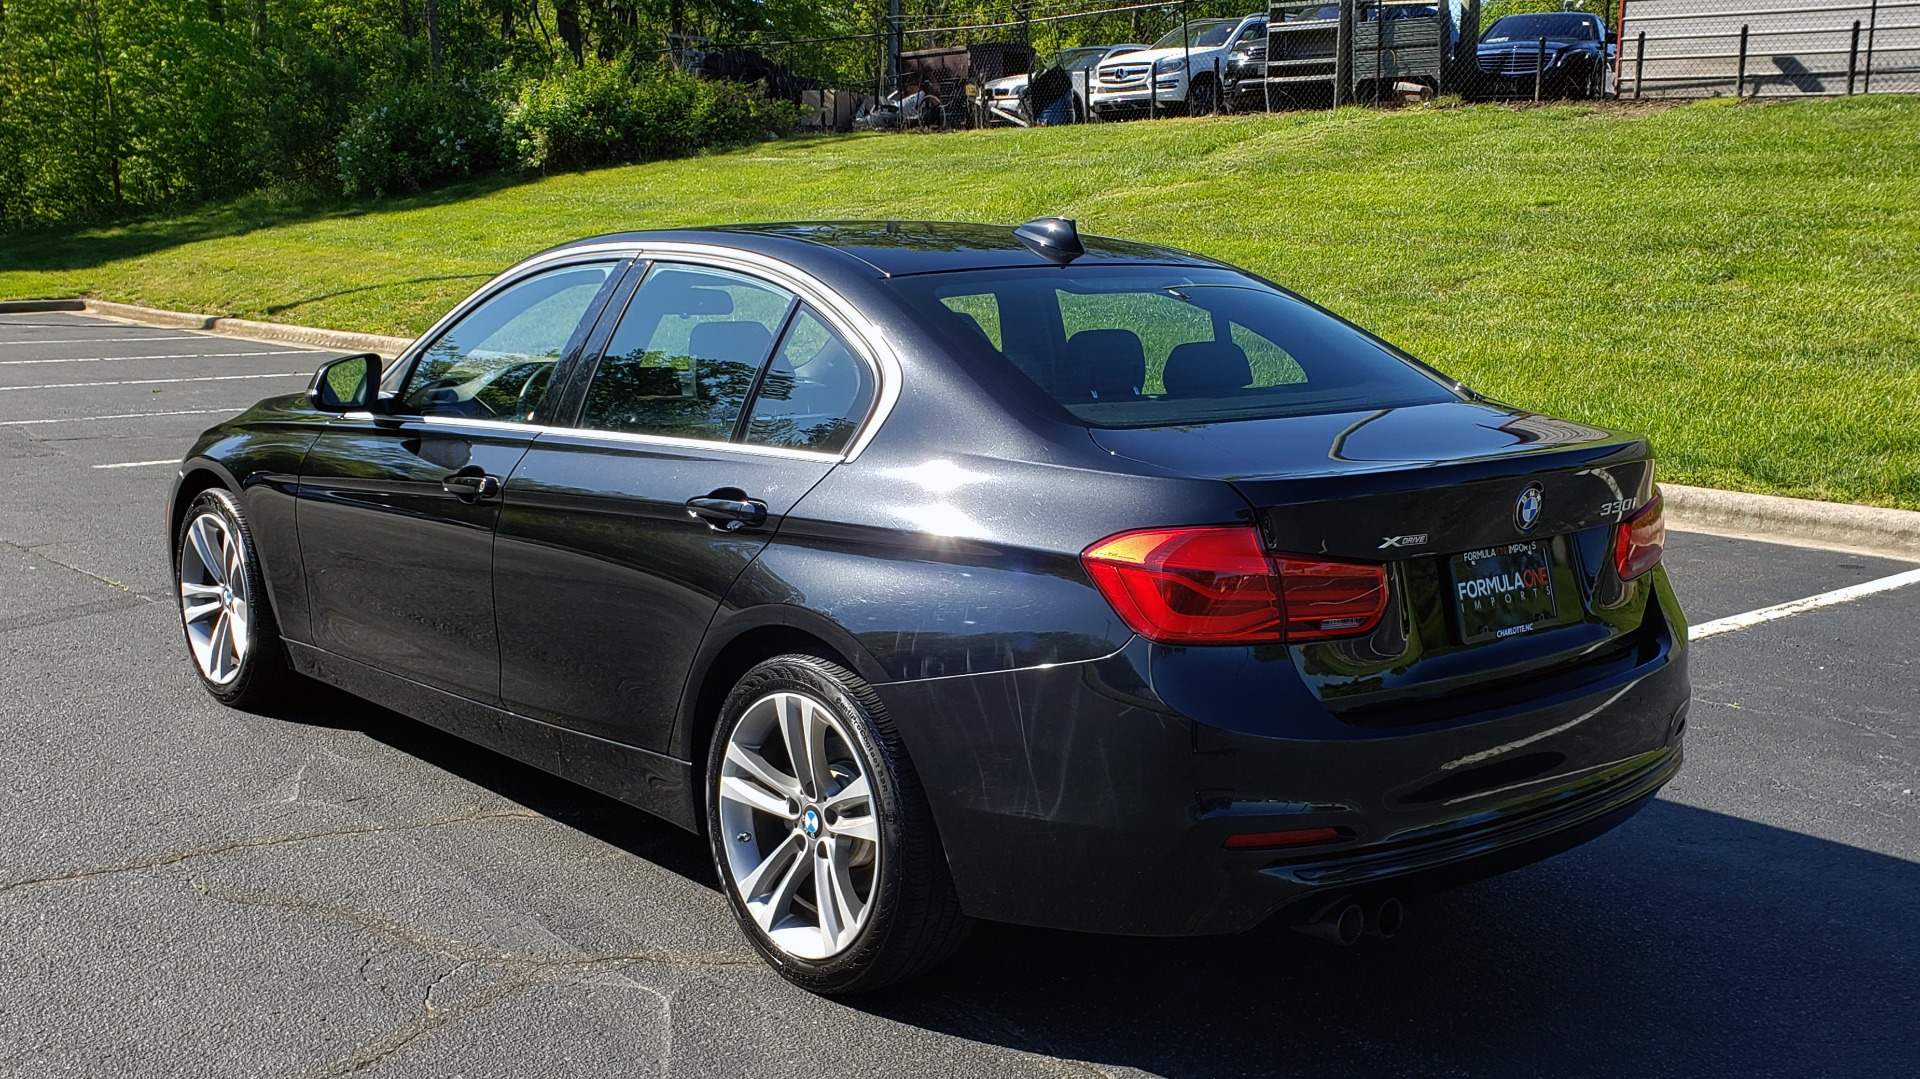 Used 2017 BMW 3 SERIES 330I XDRIVE / PREMIUM / NAV / DRVR ASST / CLD WTHR / REARVIEW for sale Sold at Formula Imports in Charlotte NC 28227 3